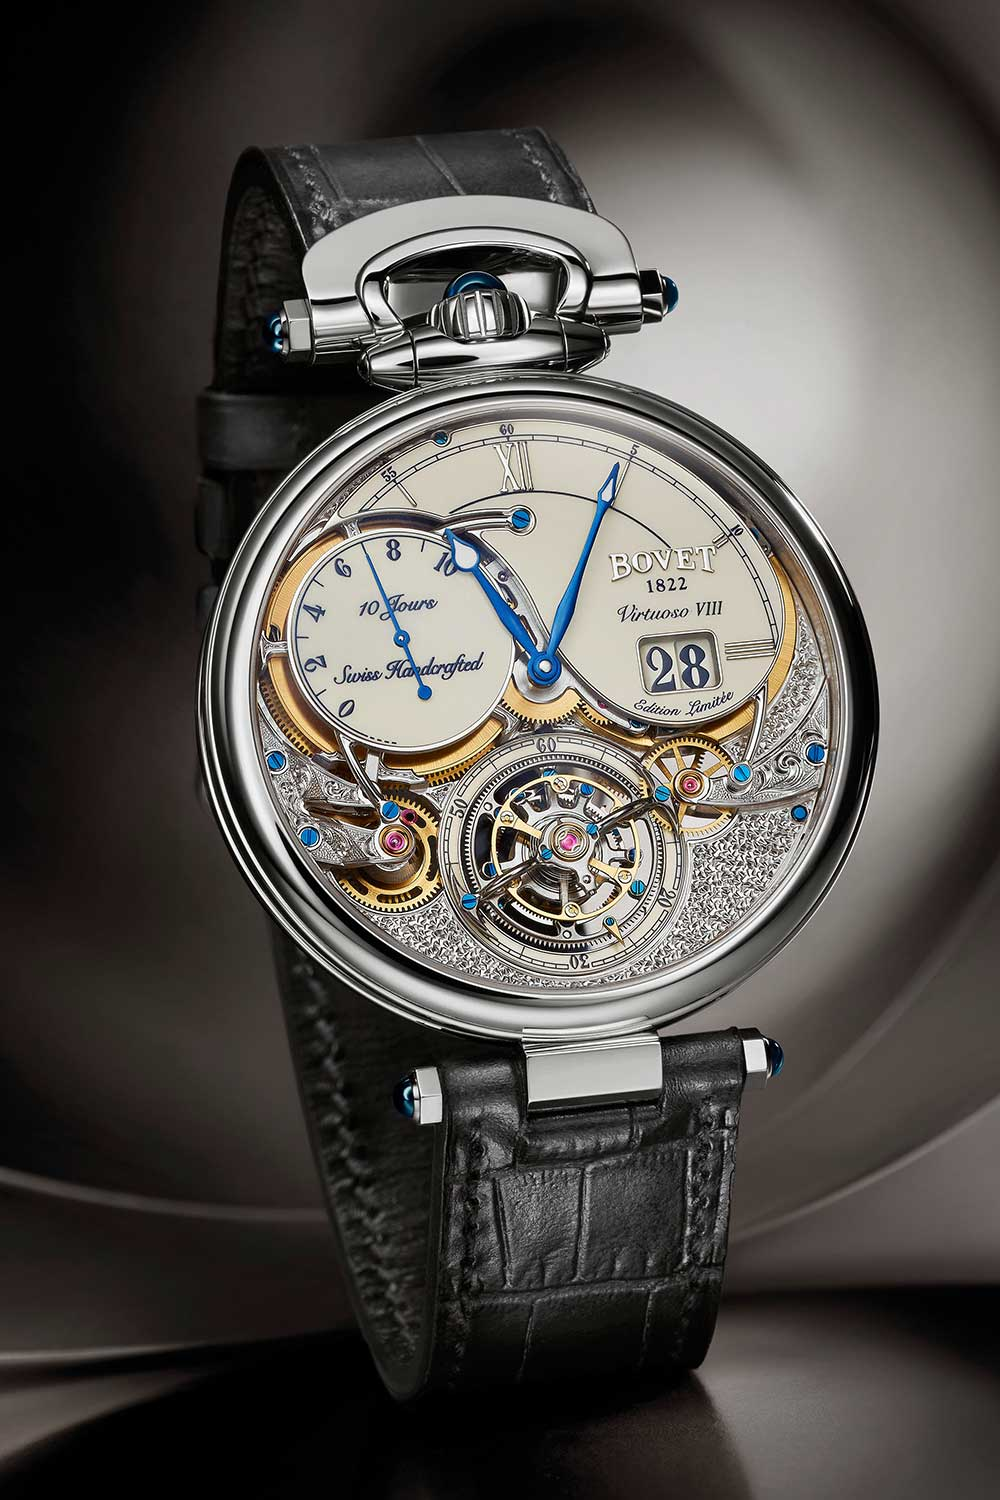 Bovet Virtuoso VIII Flying Tourbillon Big Date